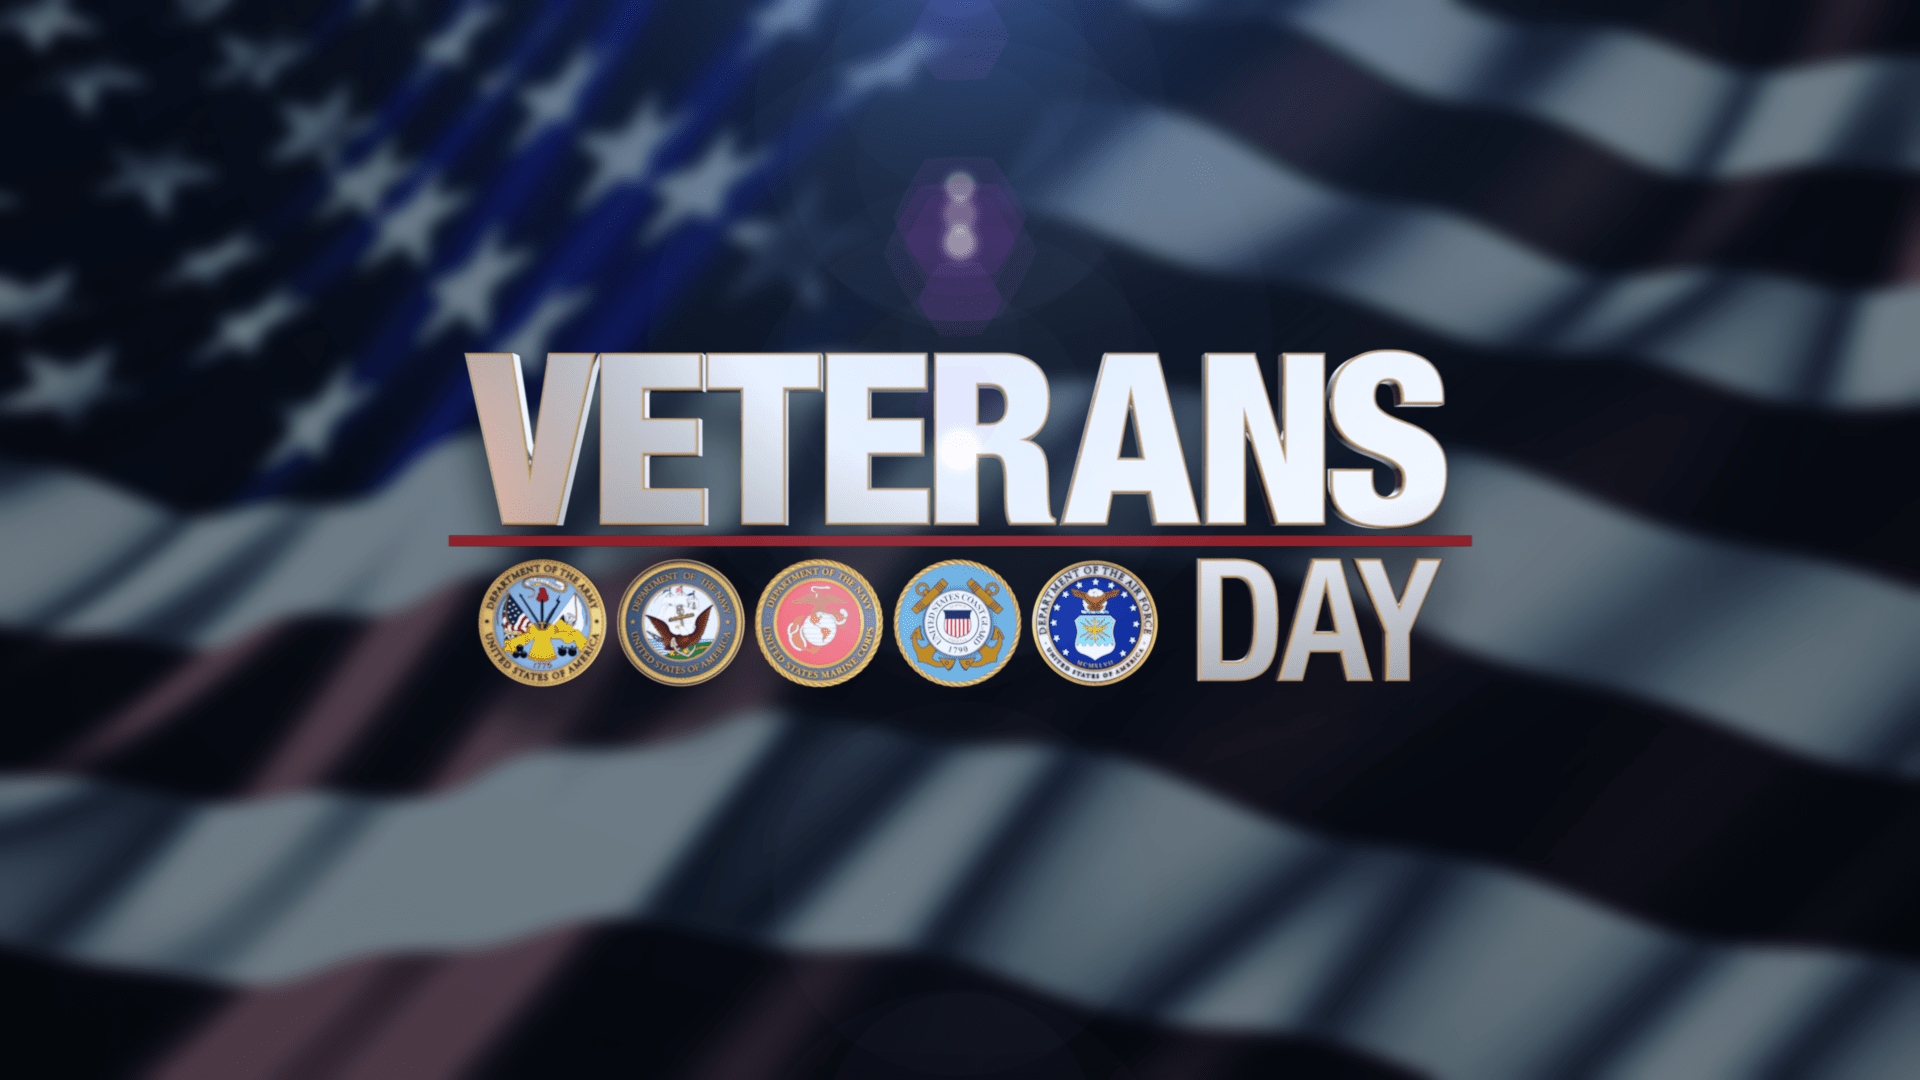 Veterans-Day-Graphic_85849